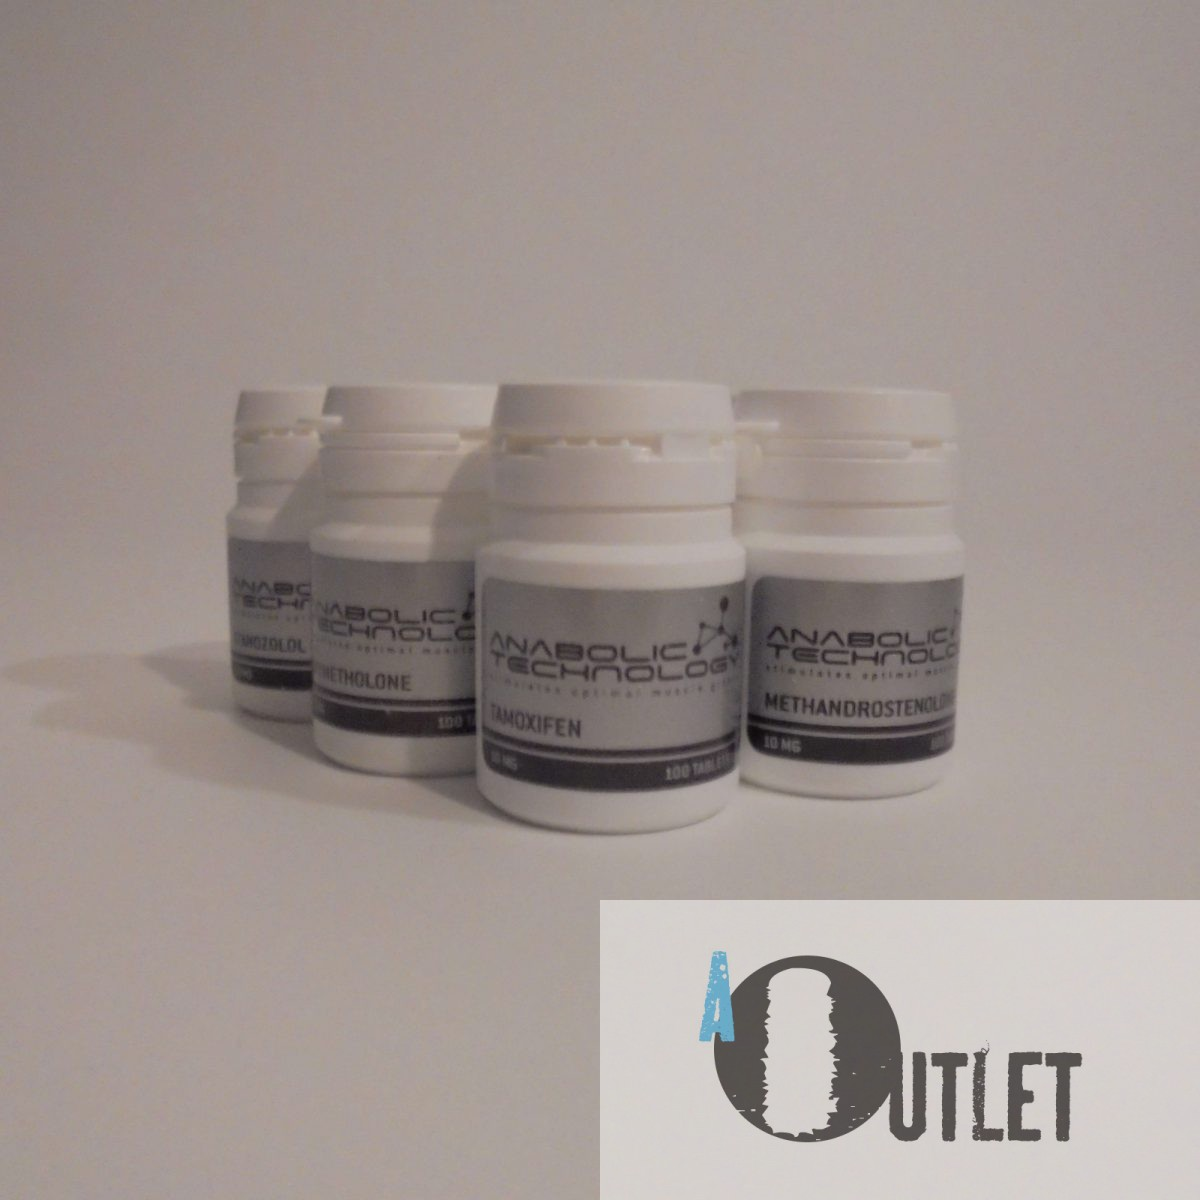 Anabolic Technology tablets